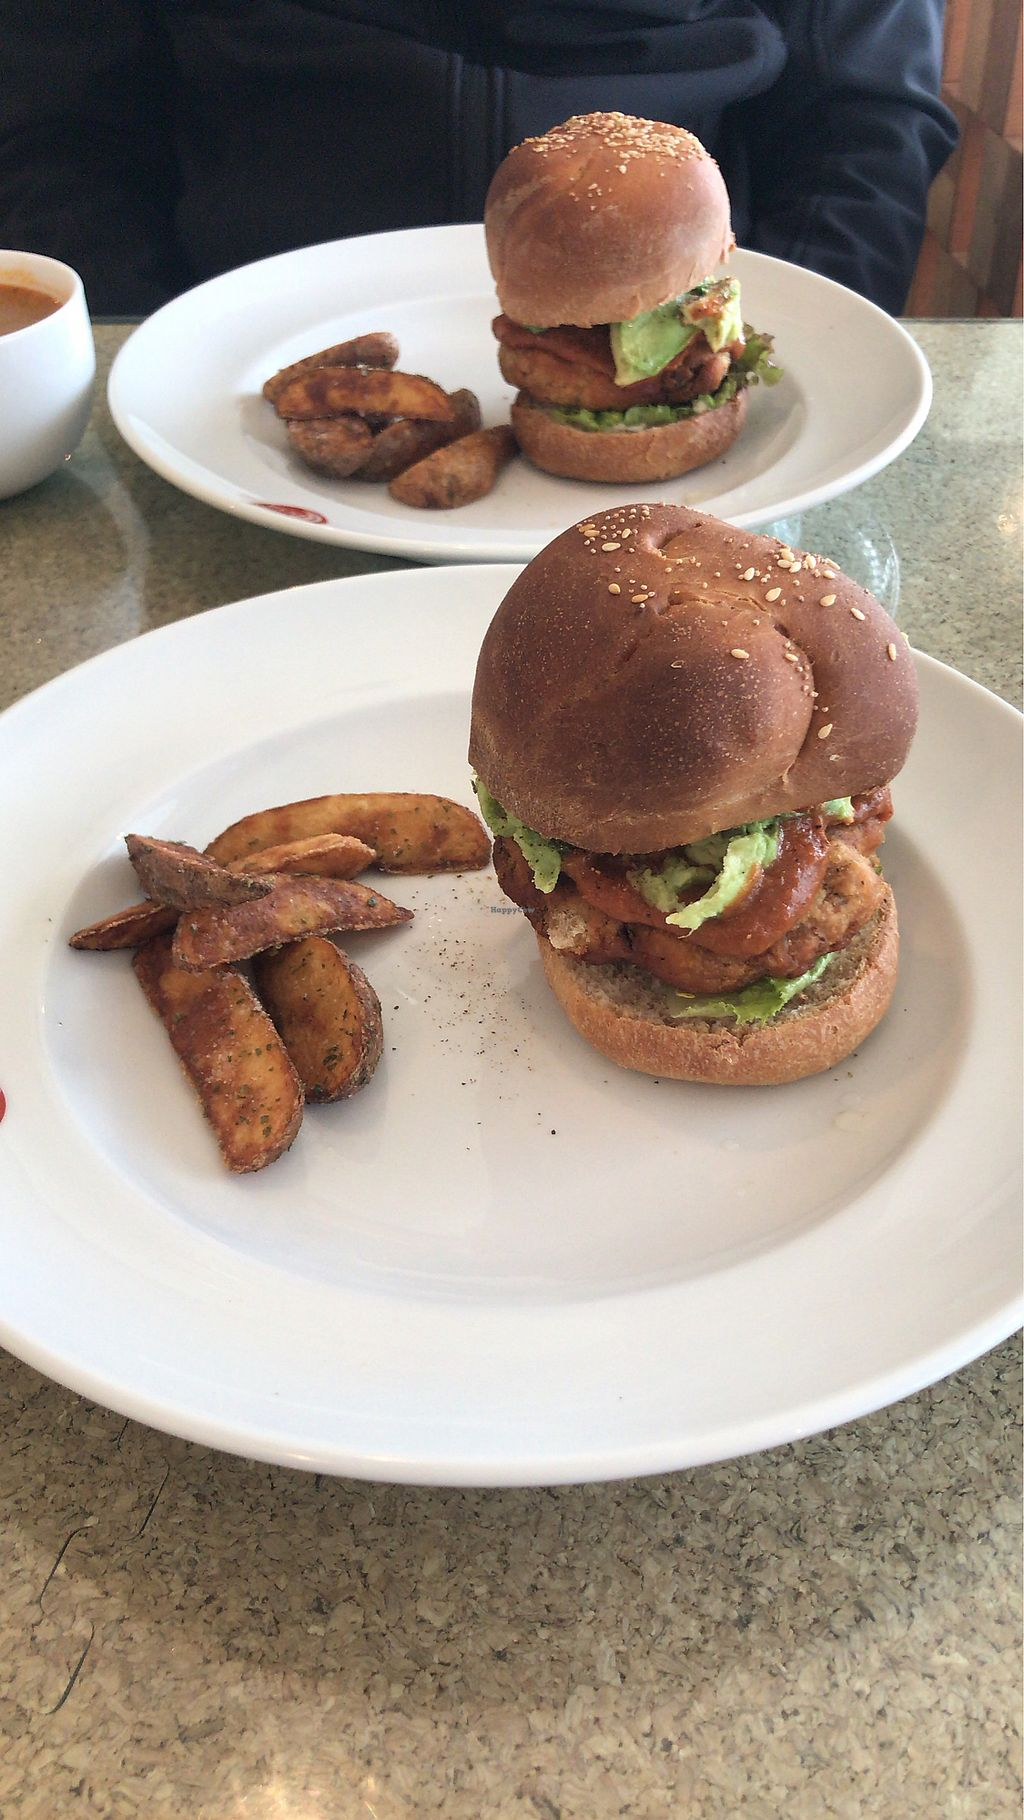 """Photo of DevaDeva Cafe  by <a href=""""/members/profile/MelissaW"""">MelissaW</a> <br/>Chicken burger  <br/> January 30, 2018  - <a href='/contact/abuse/image/5939/352698'>Report</a>"""